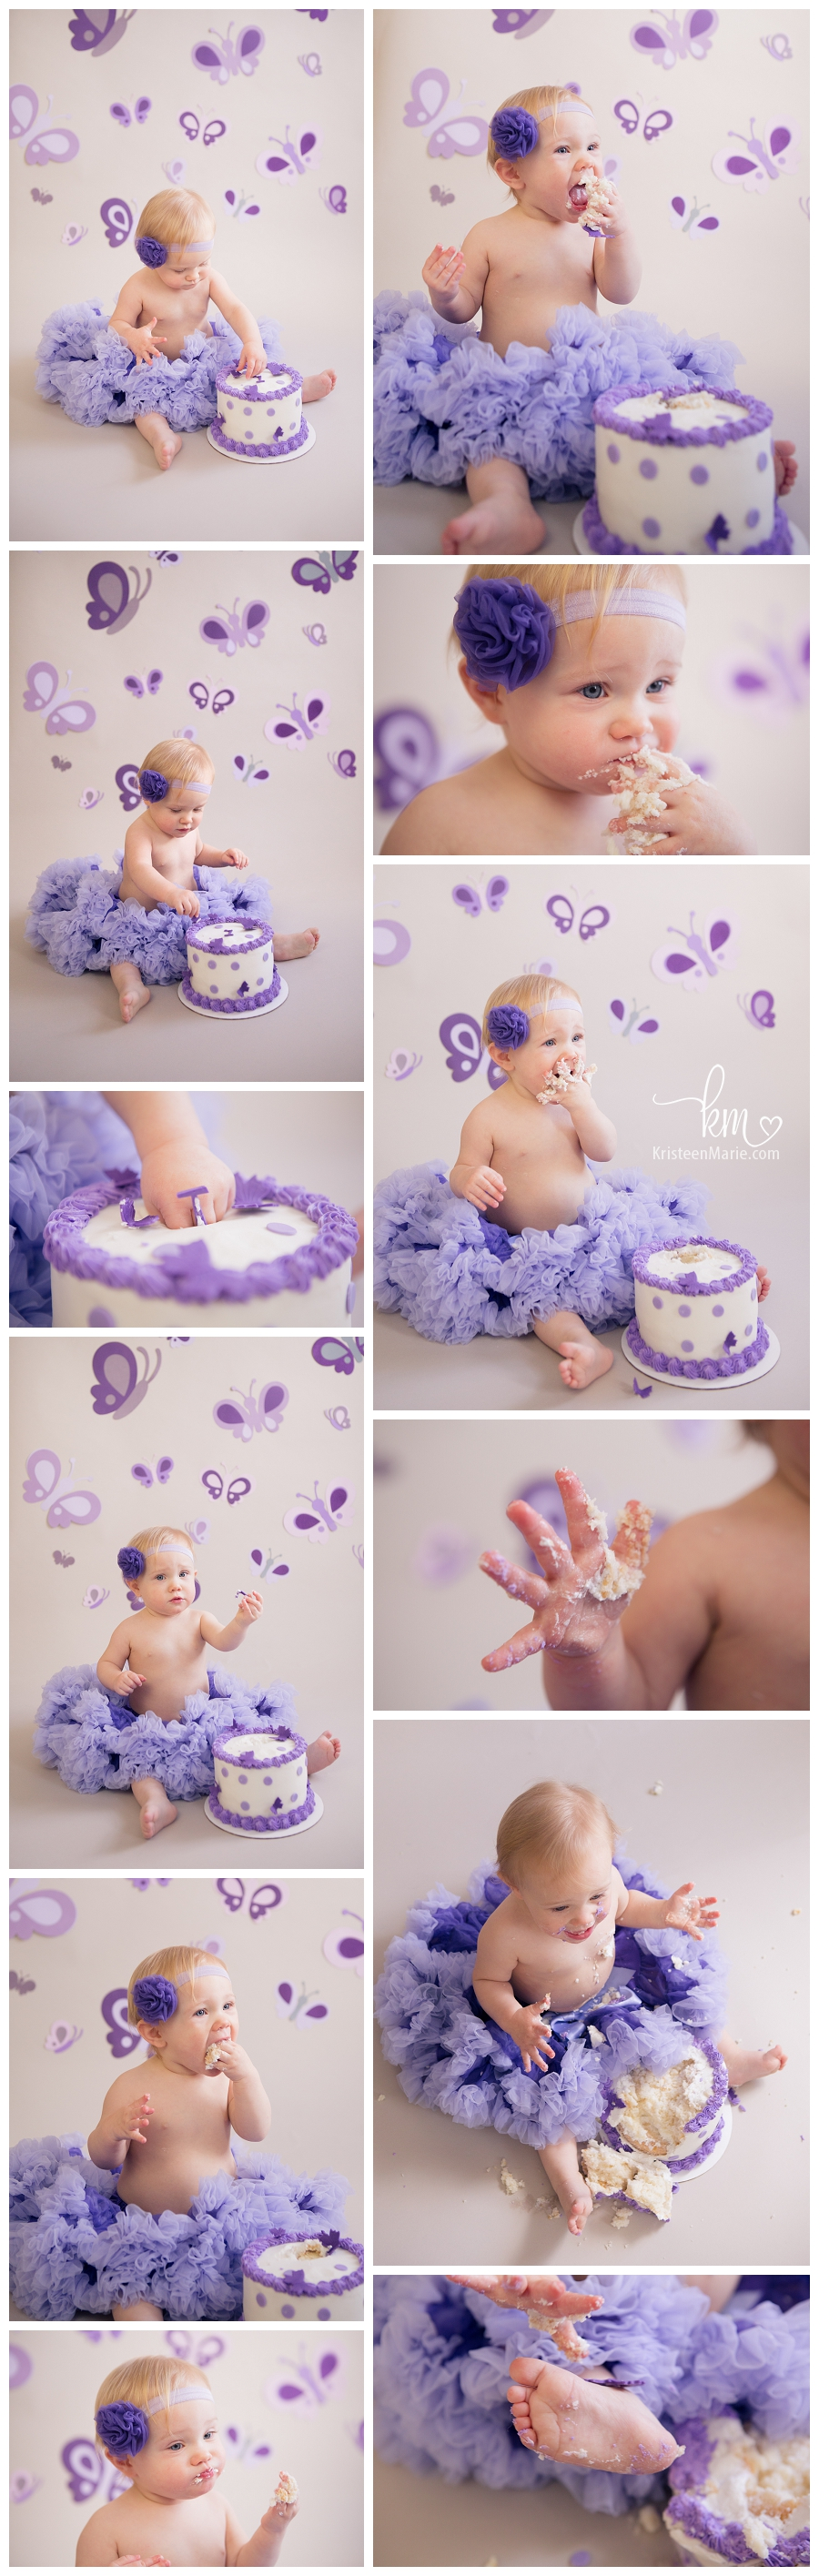 Butterfly themed cake smash session